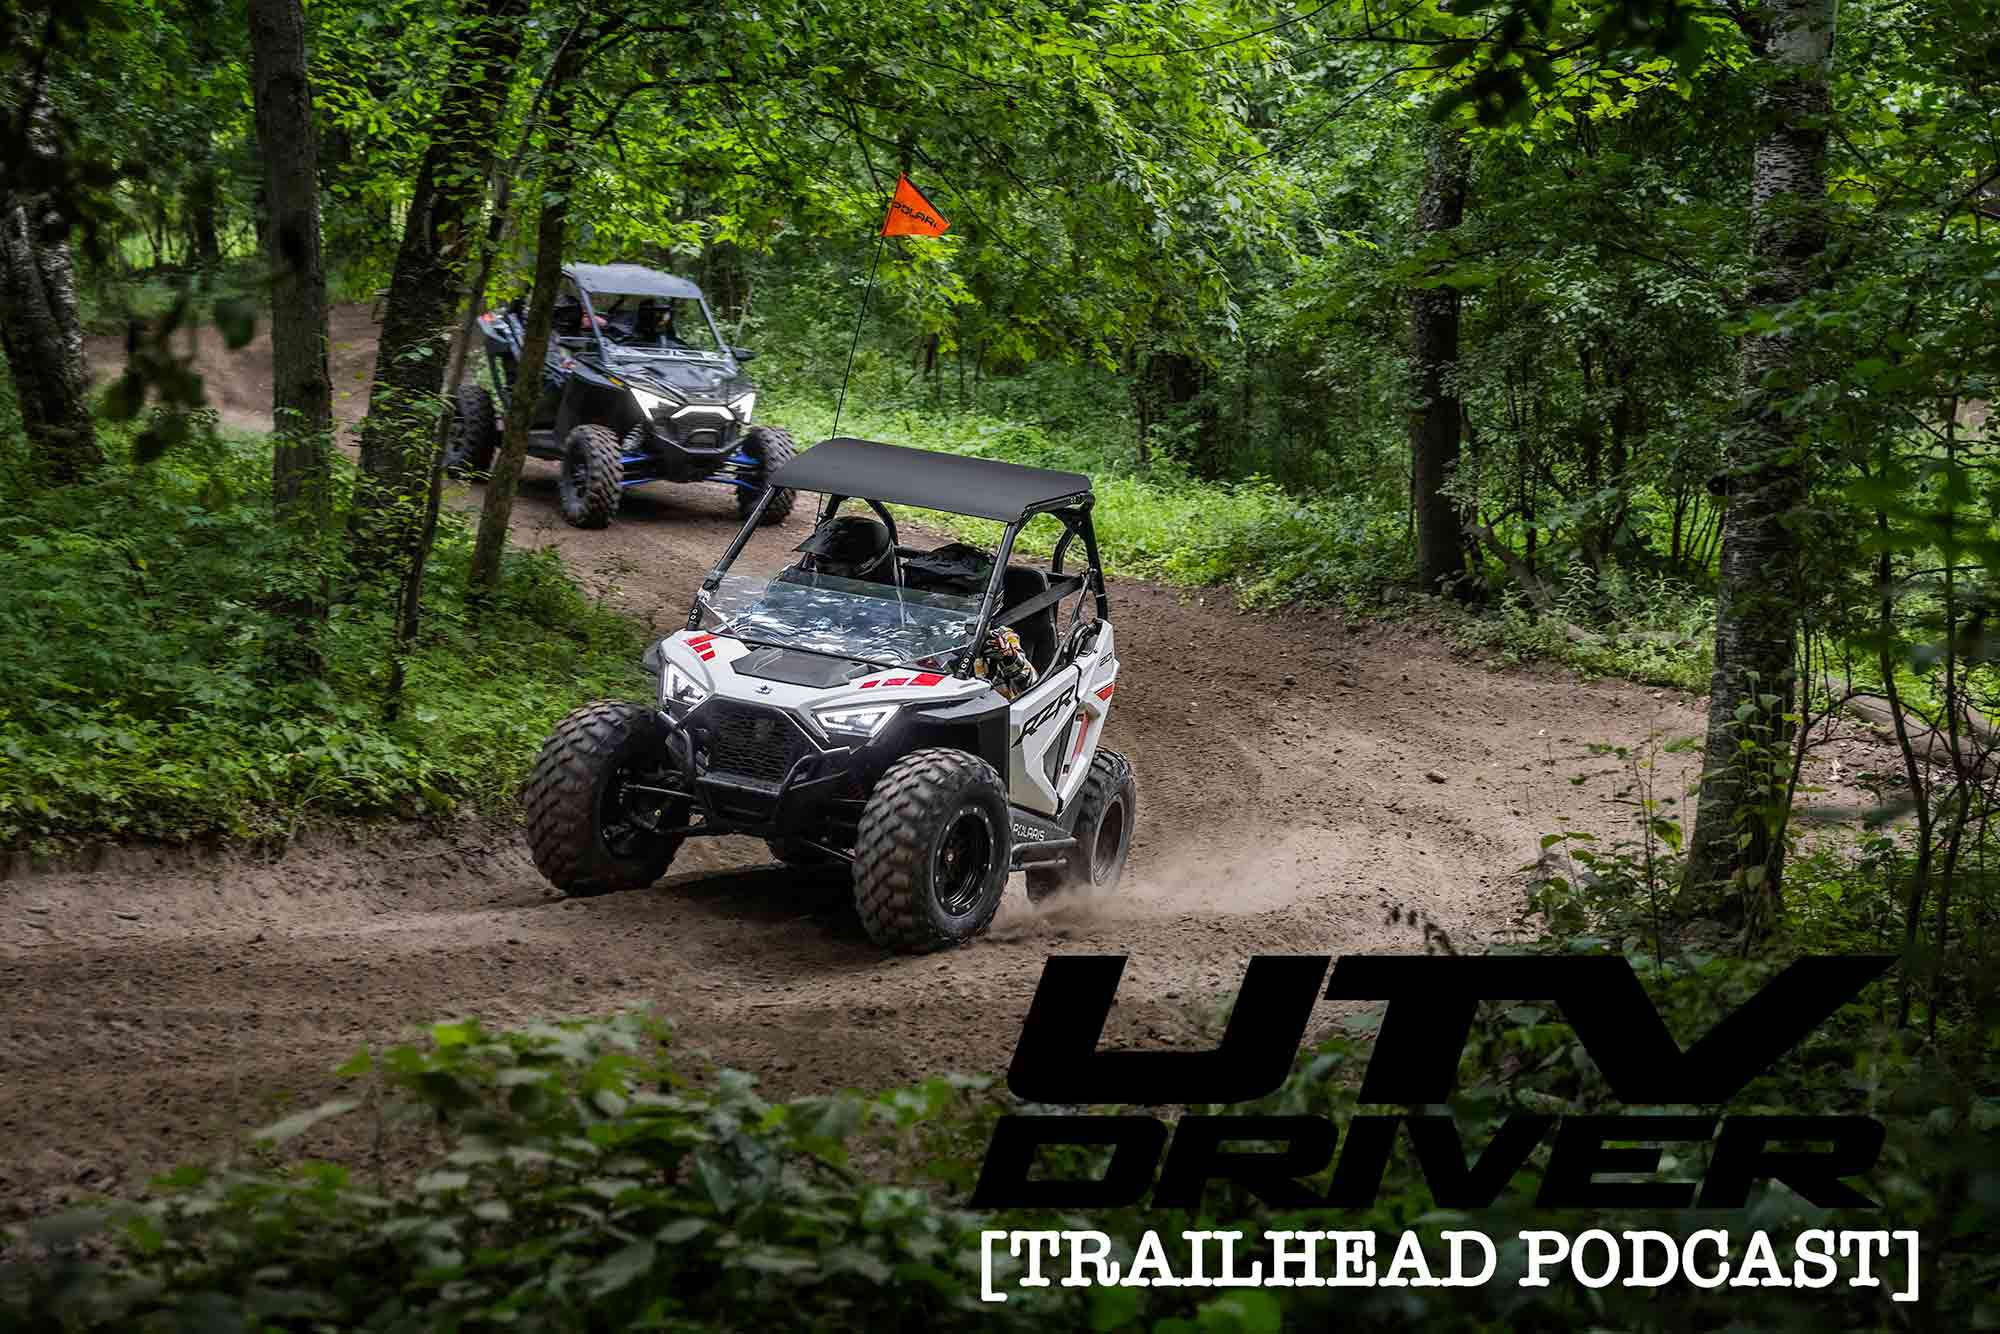 We talk about the Polaris RZR 200 EFI and more new 2022 models.